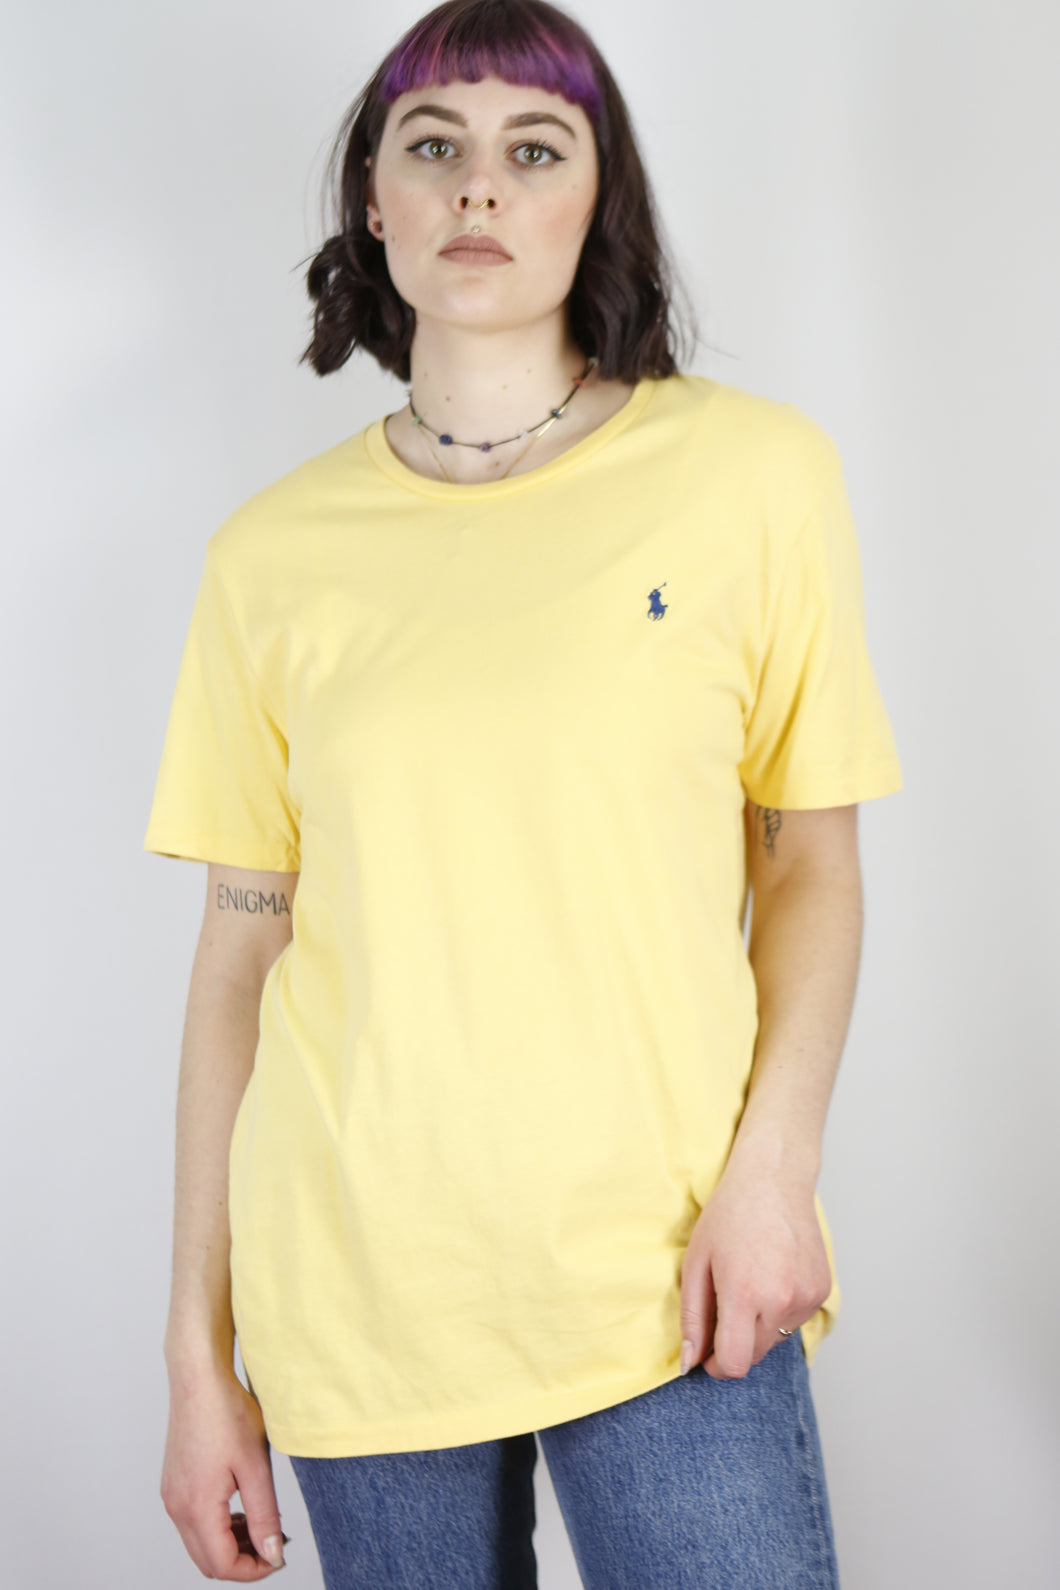 Vintage Ralph Lauren T-Shirt in Yellow in Size M